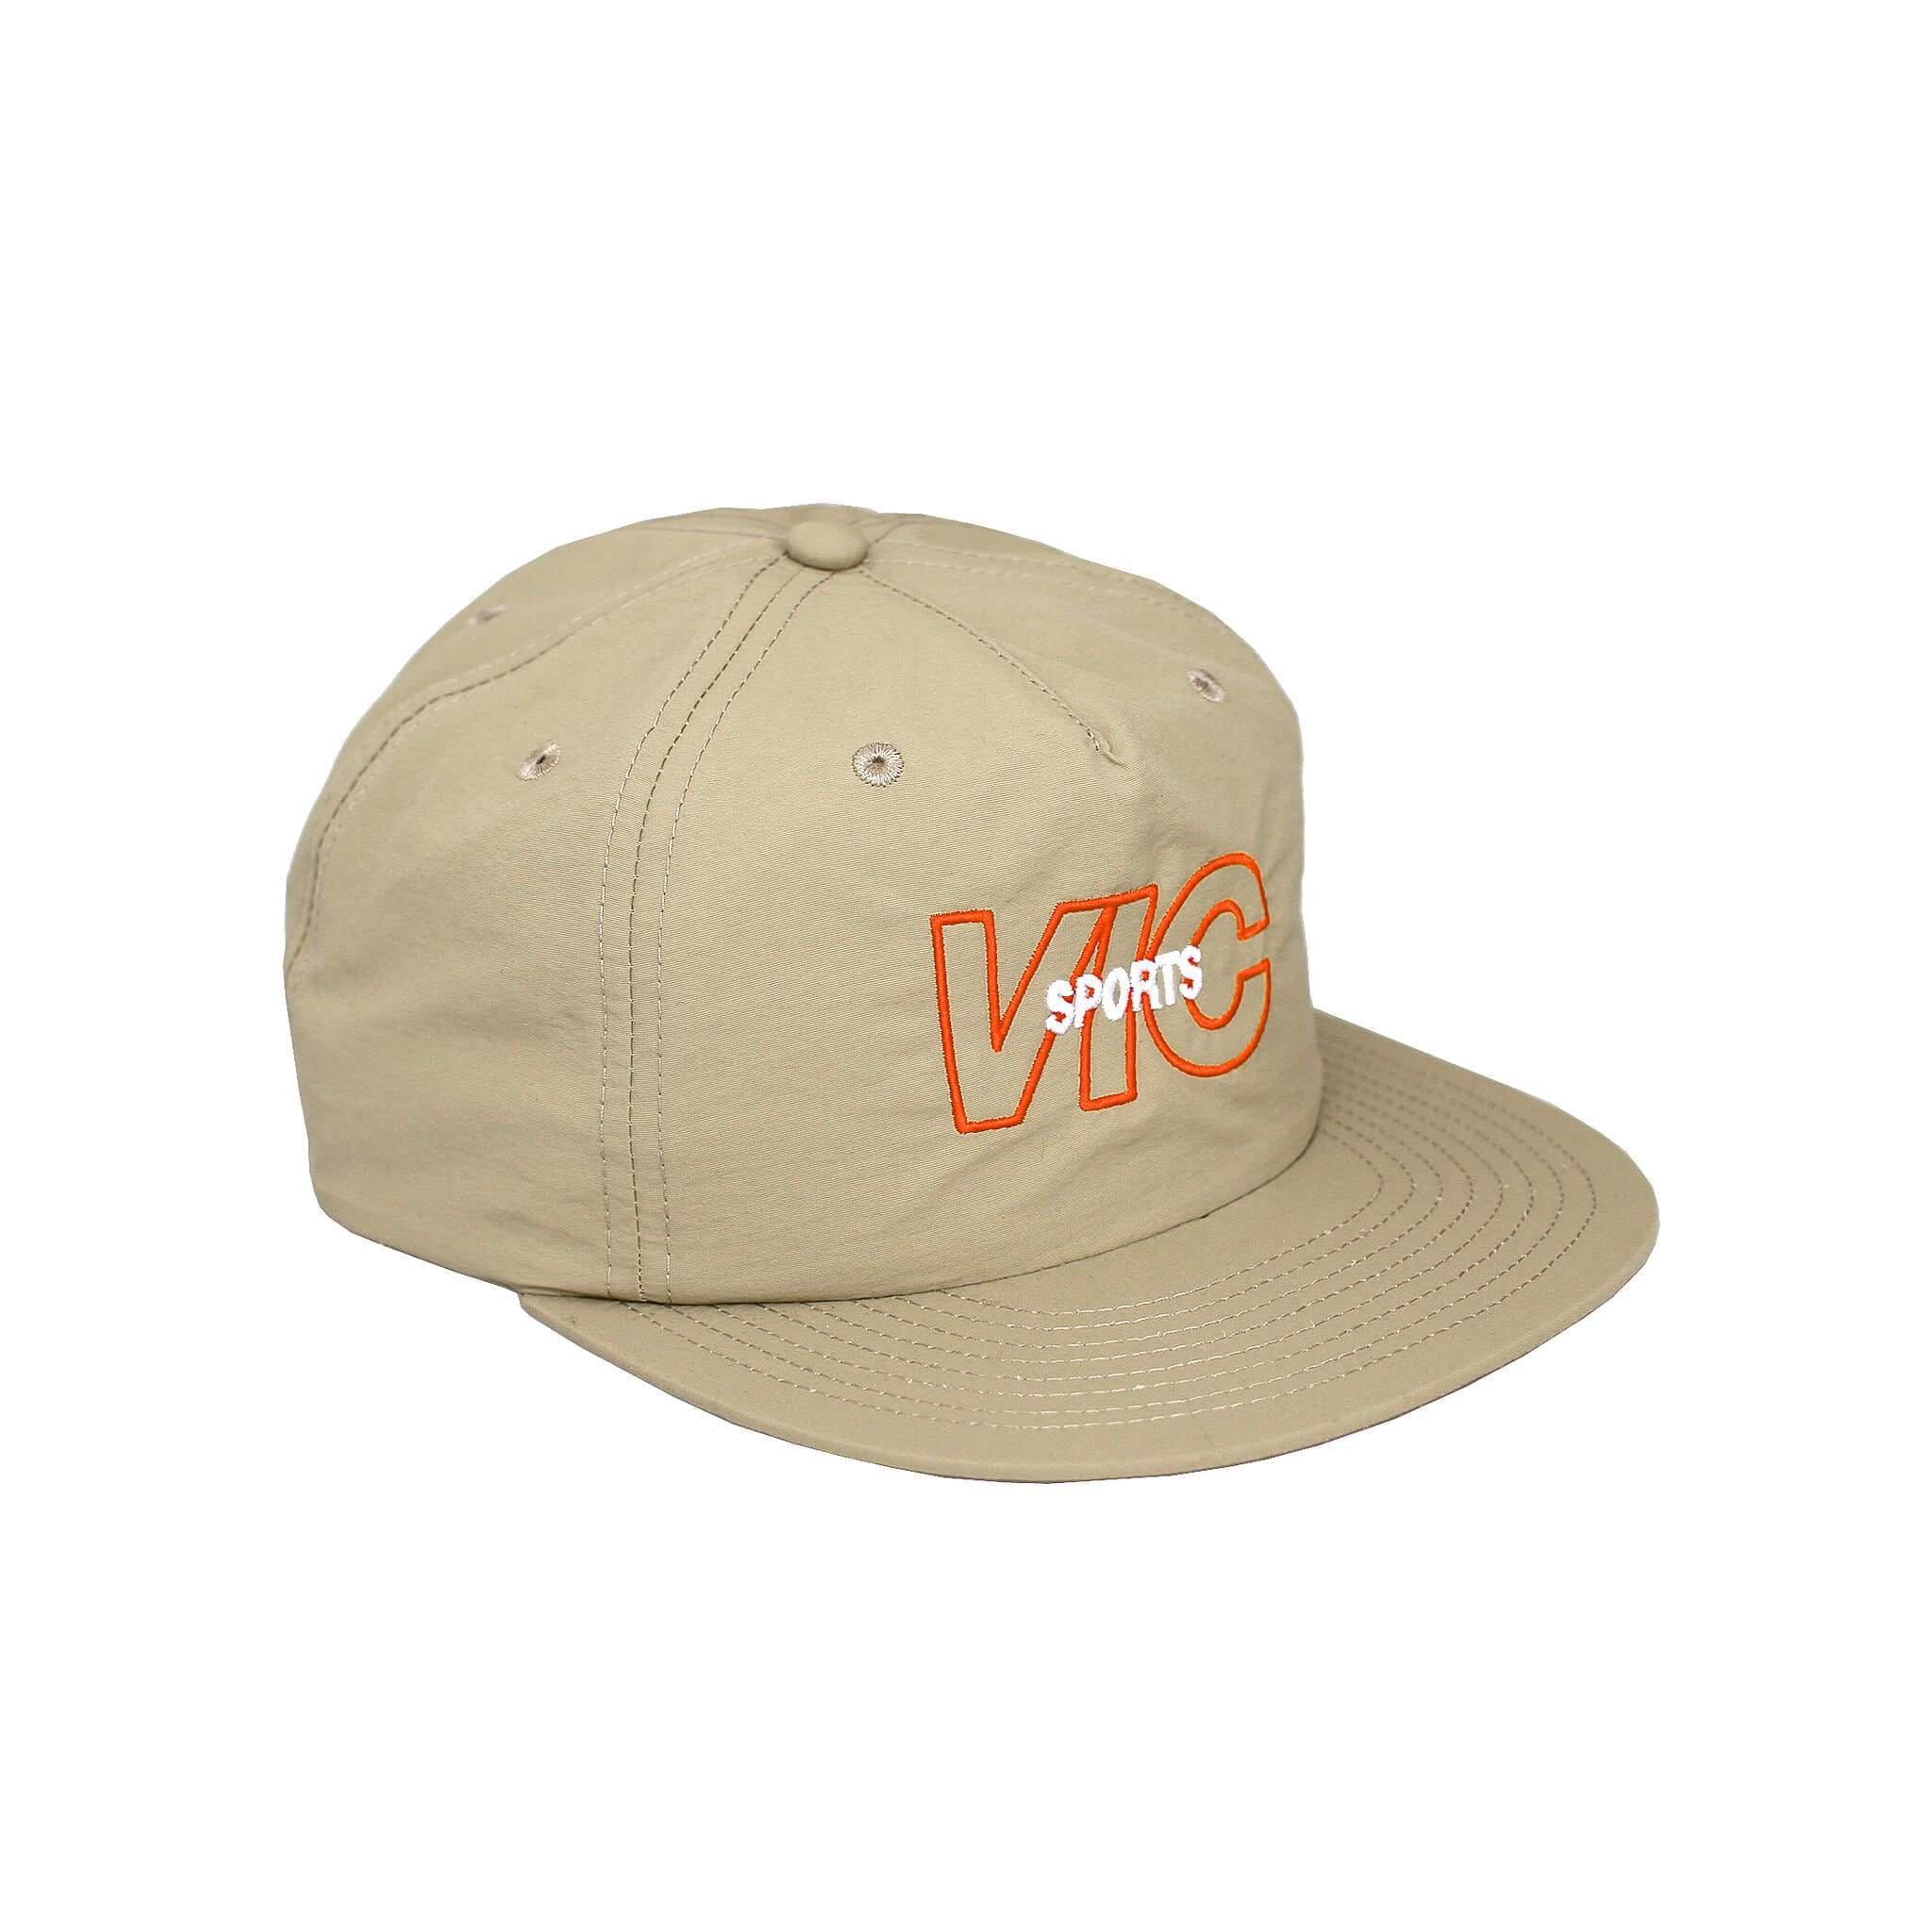 Premium quality unstructured 5-panel snapback hat by New Zealand skate and streetwear clothing label VIC Apparel. Embroidered logo. Classic vintage retro cap style.